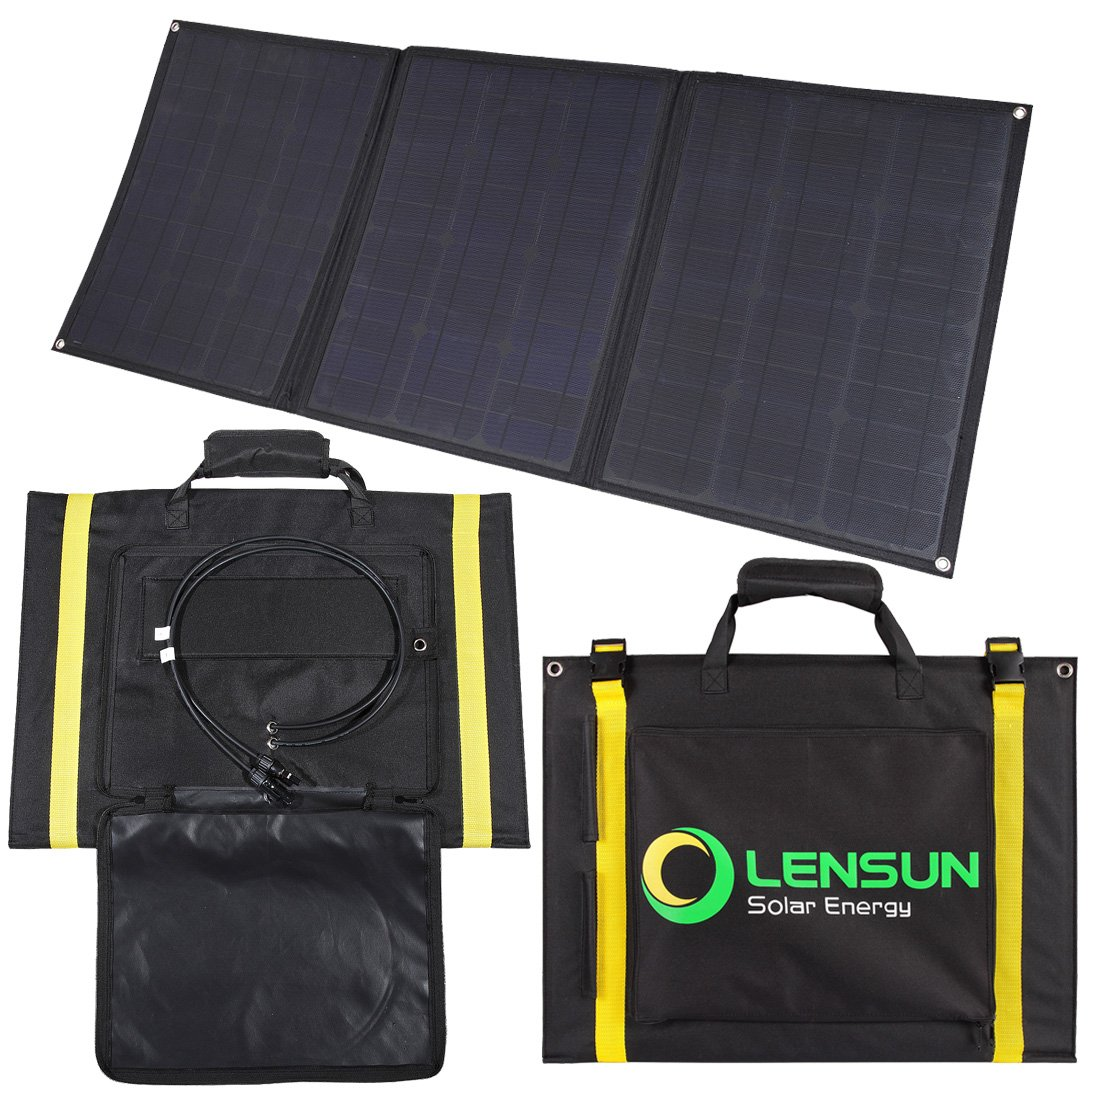 Lensun 100w Foldable Solar Panel 12v Ultralight Volt Meter Wiring As Well Diagram Rv Folding Charger With Mc4 Cables Ideal For Camping Van Rvs Motorhomes Caravans